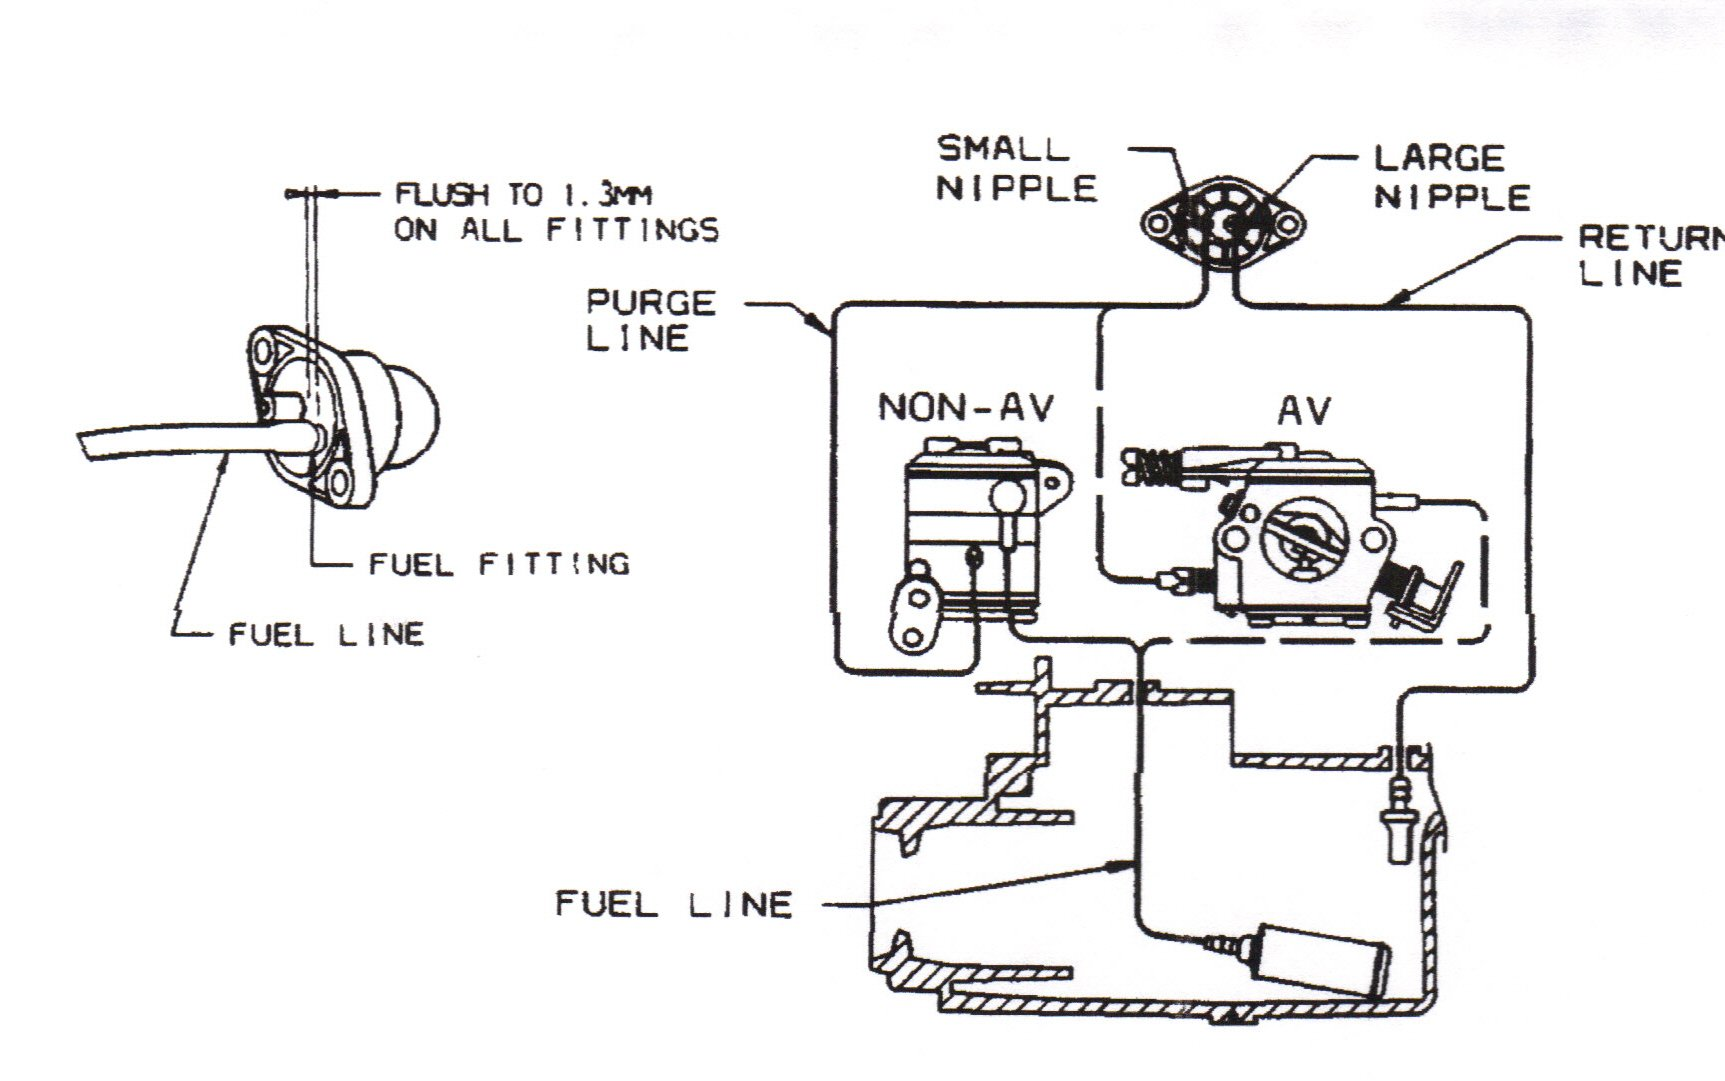 John Deere 445 Ignition Wiring Diagram For For 2000 Expedition Fuse Box